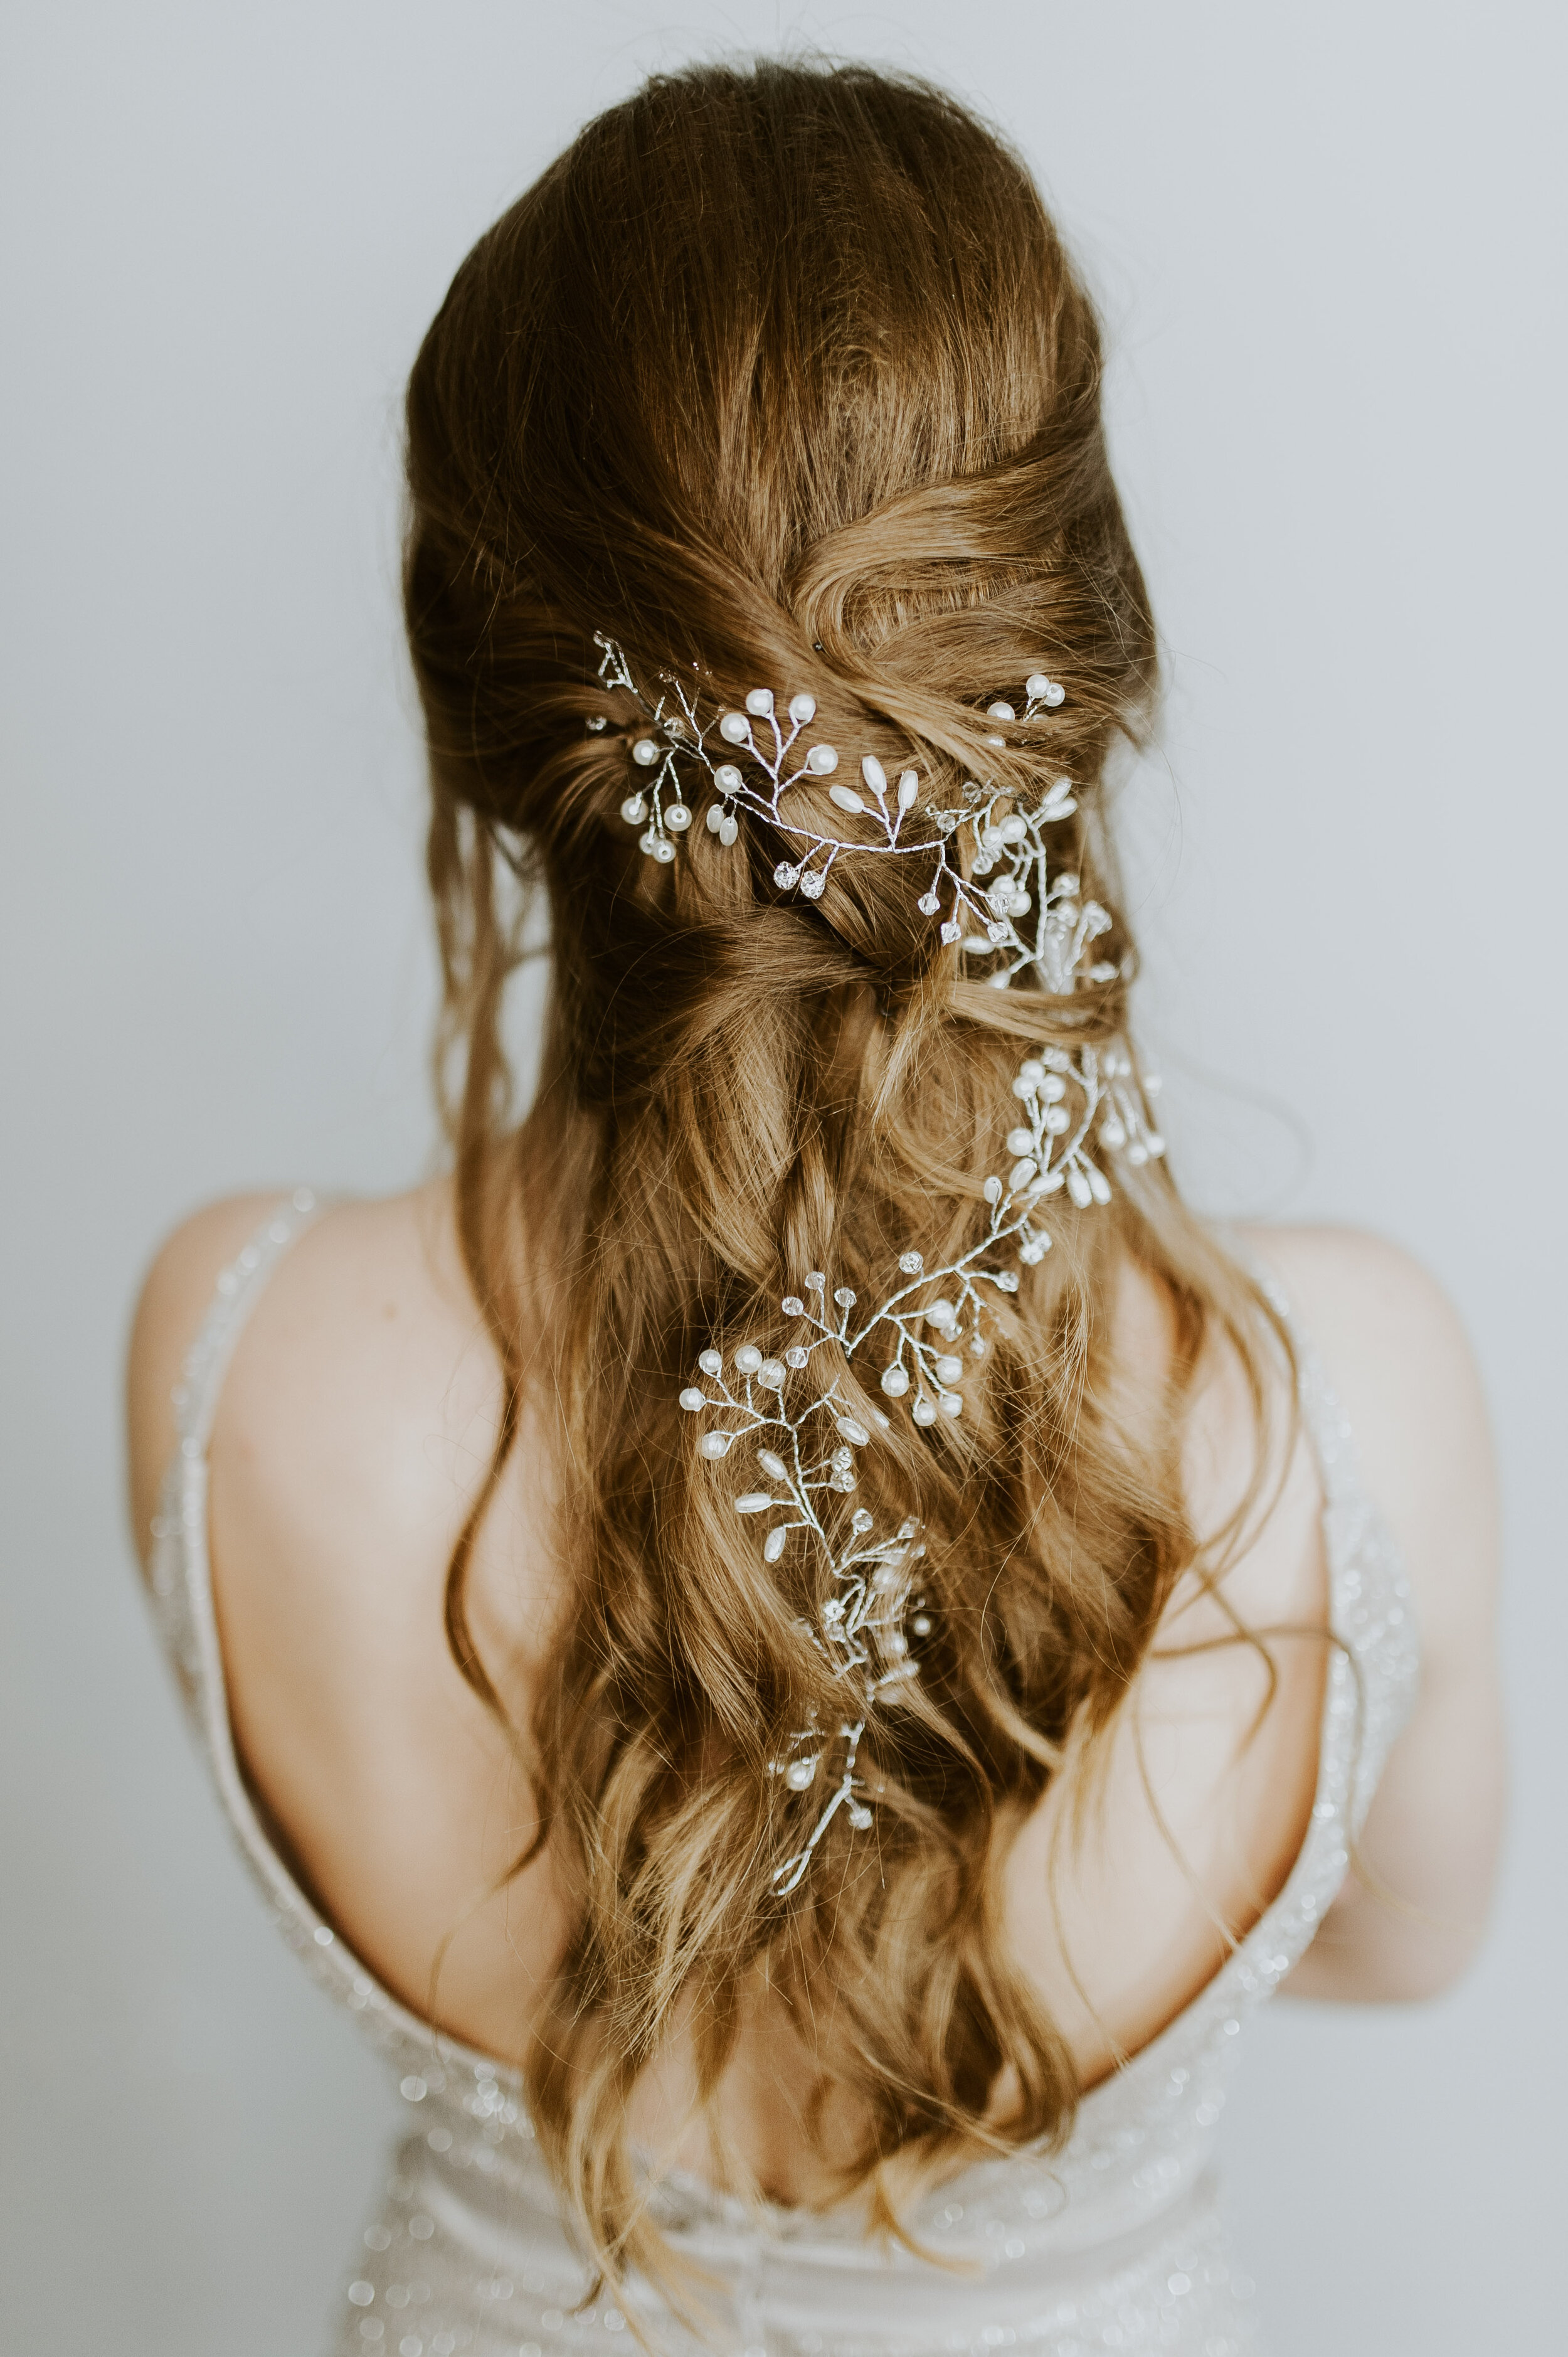 Special Events and Weddings - The big moments in life are when you have to look and feel your very best. Our salon is always creating incredible ways to make you stand out. Our services include up-dos, braids or anything you have in mind. We suggest you bring in a picture of the look you are after.Live Blow Dry is your one-stop for any event. Make-up services start at $25 and we would love to customize a look for you!